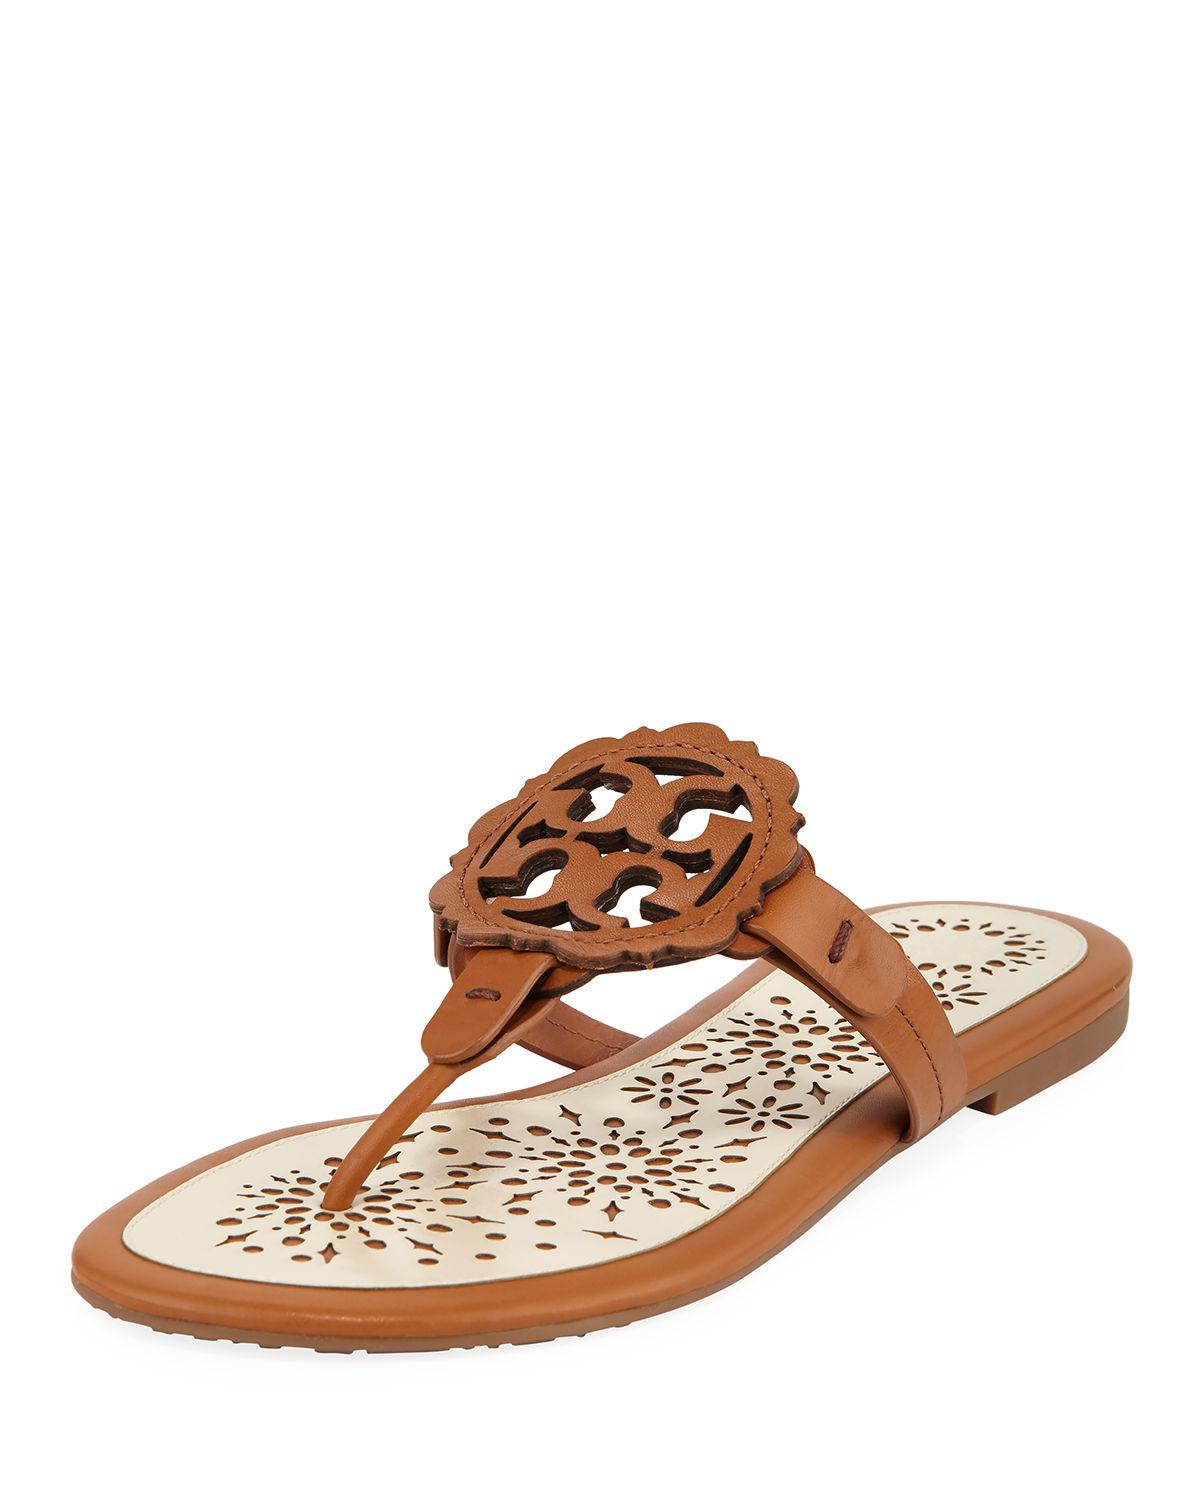 0f00969ab81 Tory Burch Women s Miller Scallop Leather Thong Sandals In Tan  New Cream